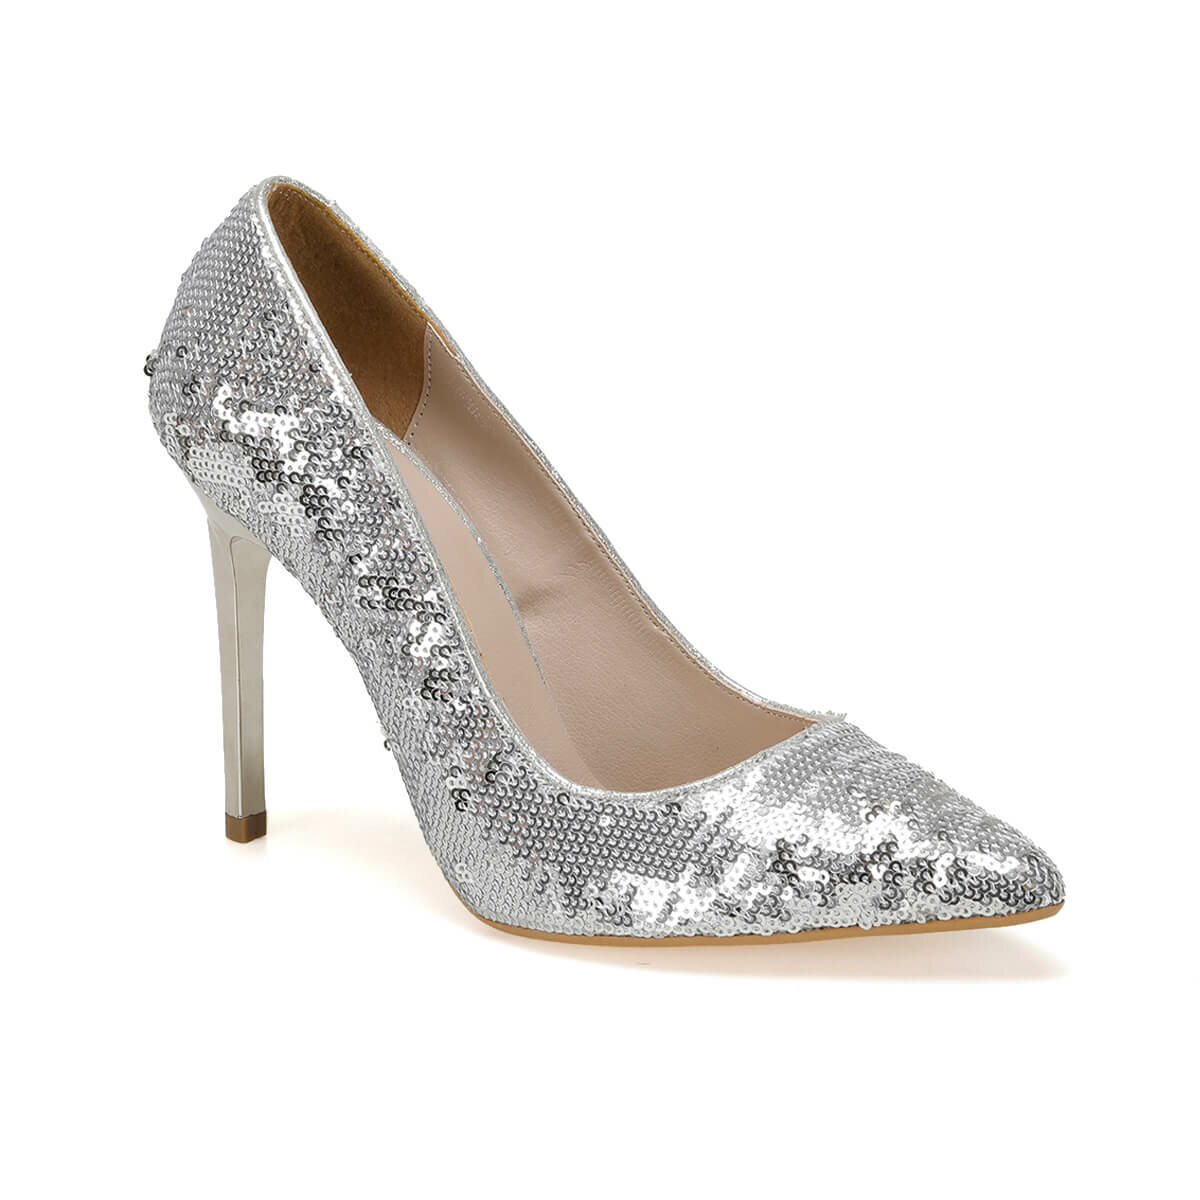 FLO 19SF-190806Y JAPANNED LEATHER Silver Women Shoes BUTIGO